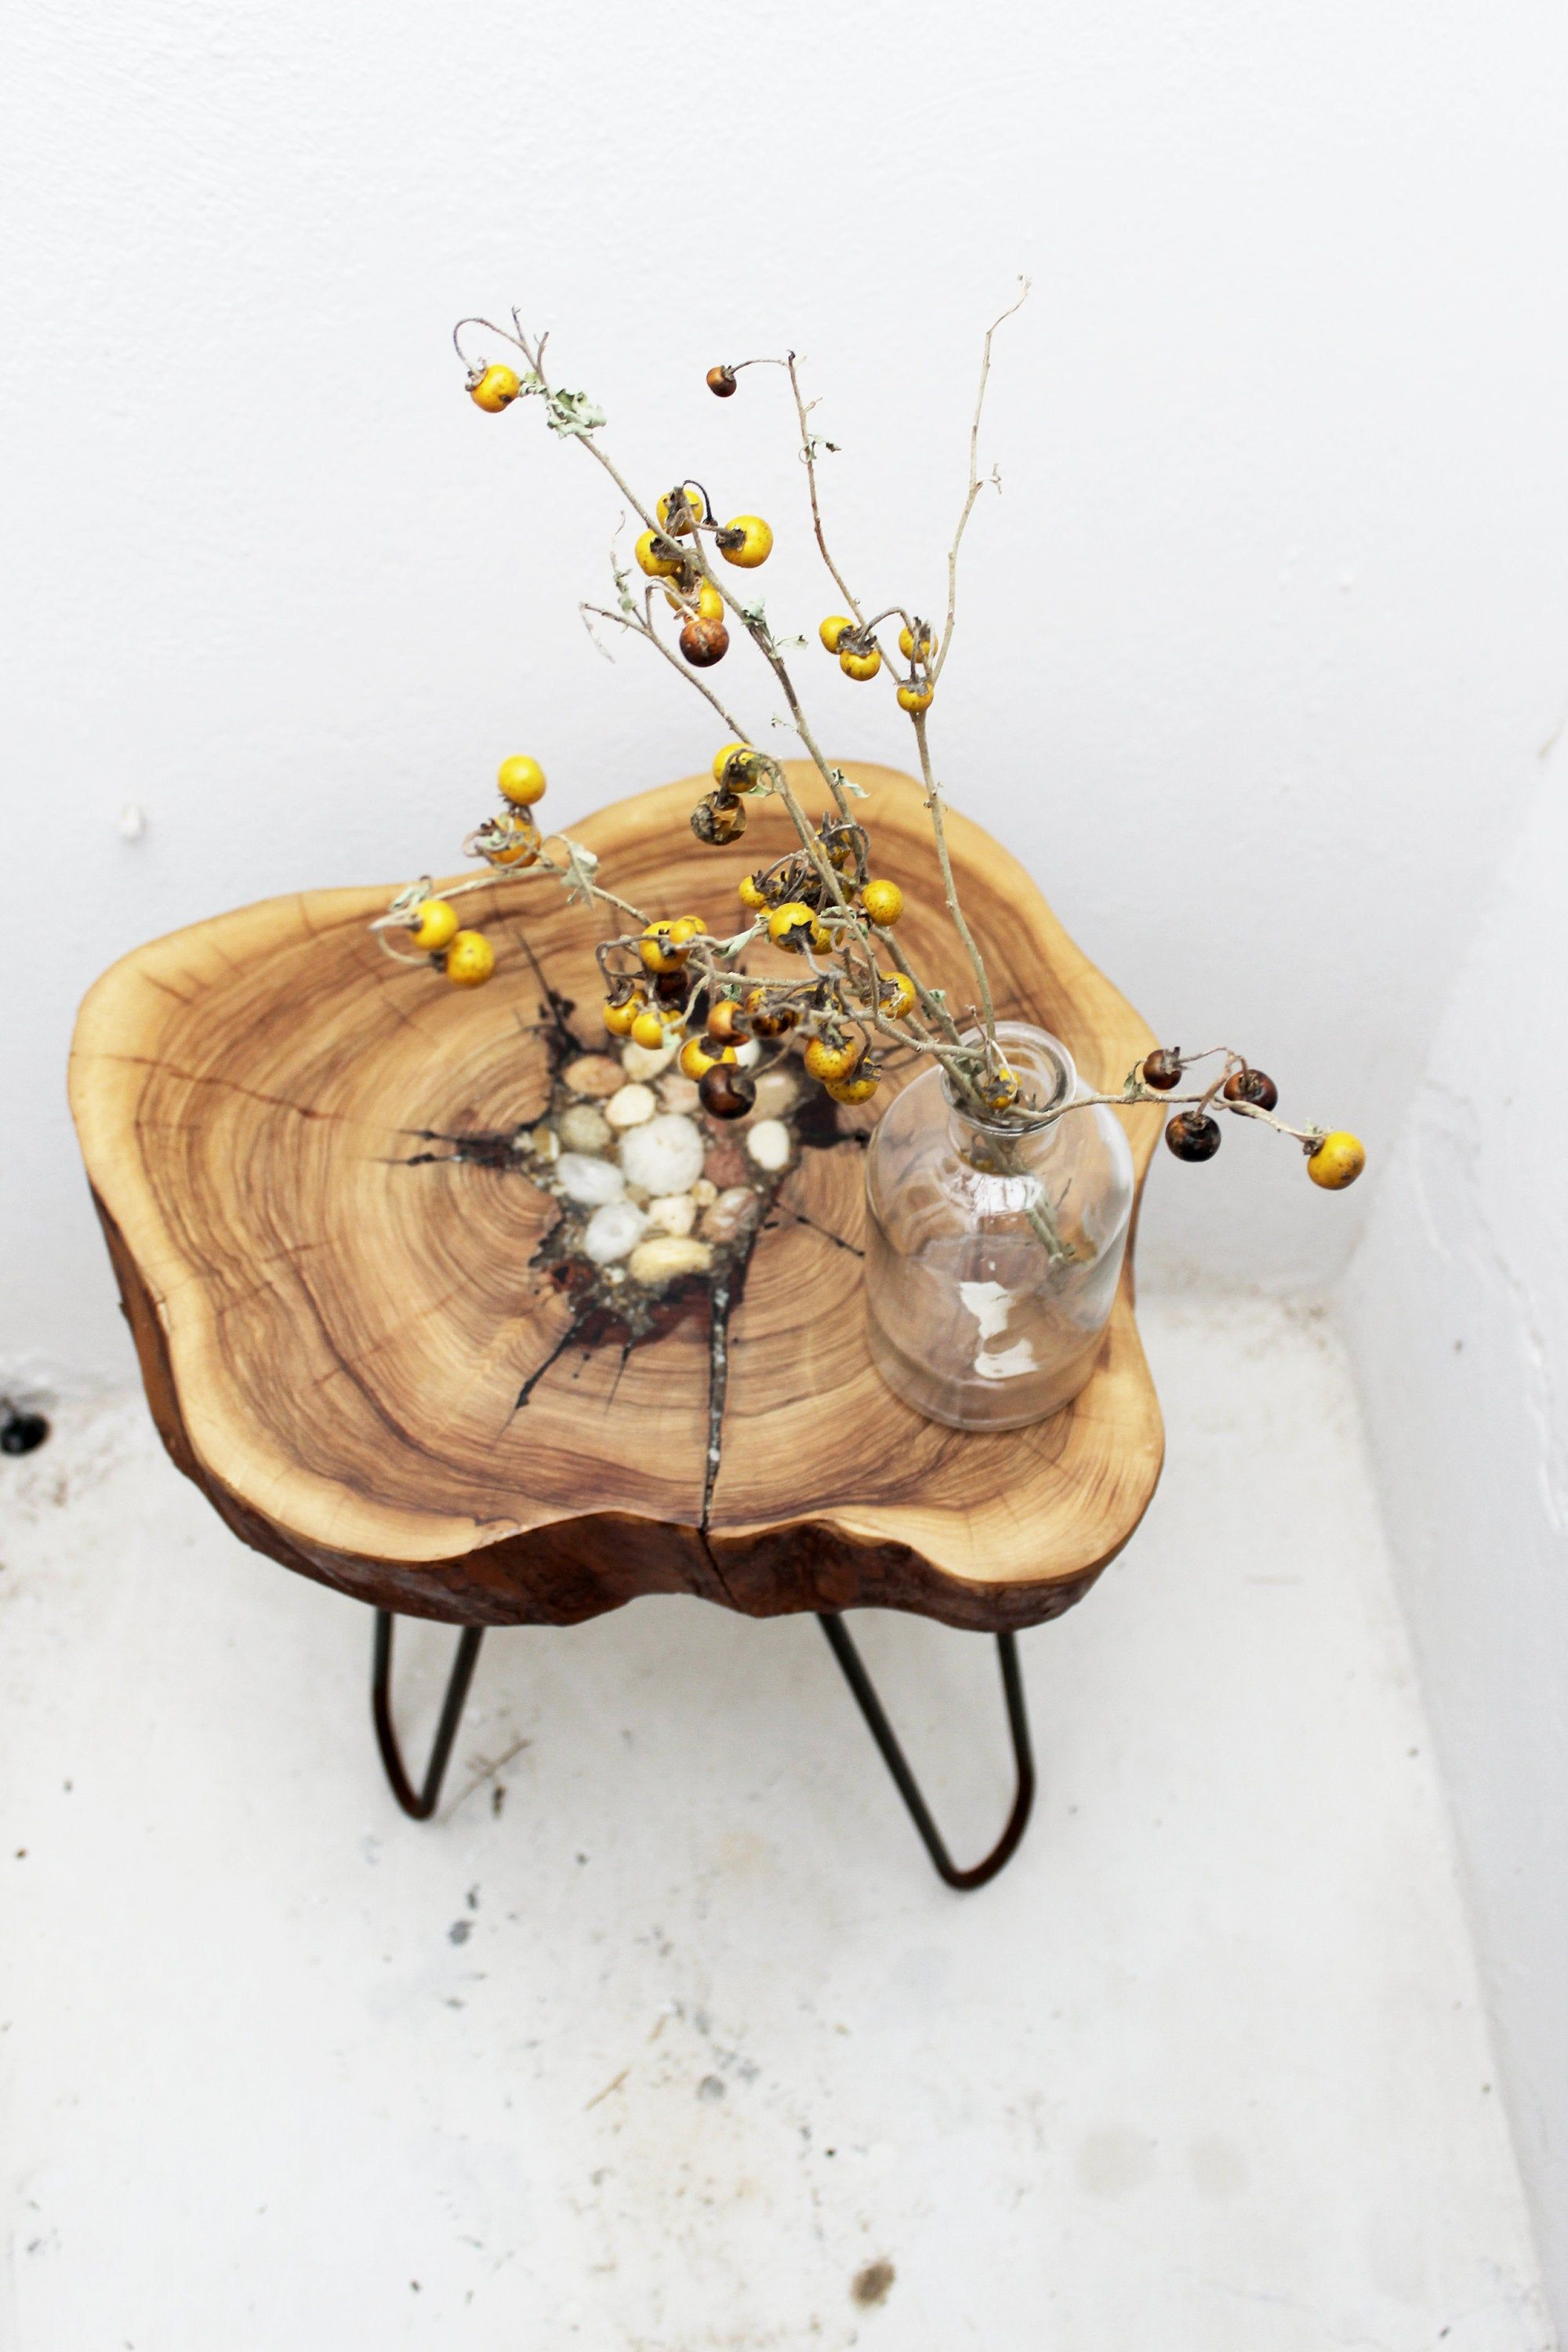 Wood Furniture Rustic Coffee Table Reclaimed Wood Table Rustic Table Small Round Table Olive Wood Rustic Coffee Tables Reclaimed Wood Table Rustic Table [ 3000 x 2000 Pixel ]